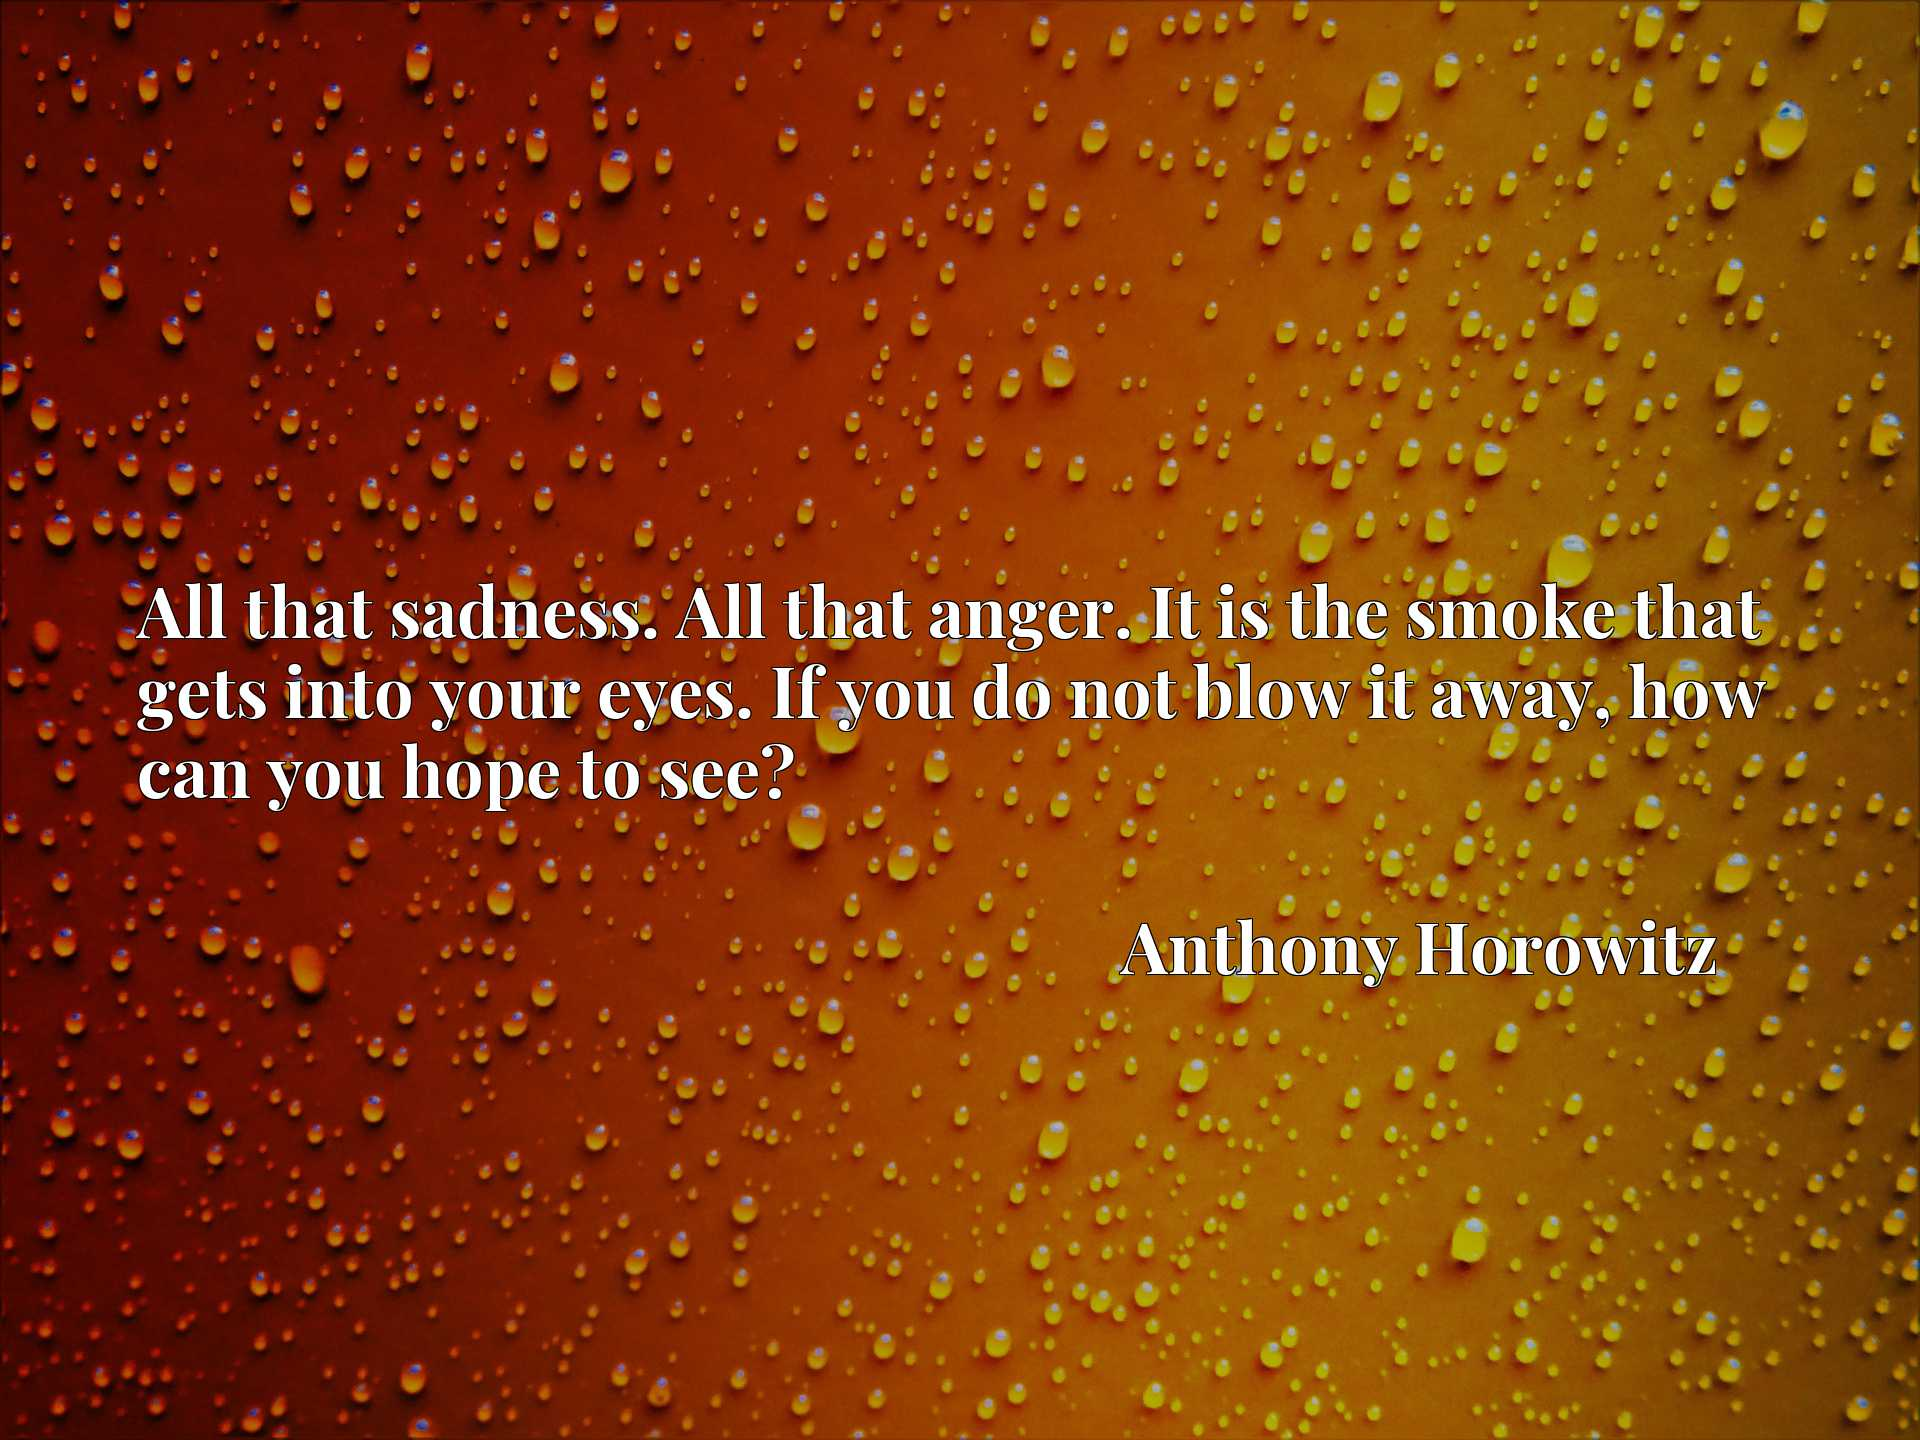 Quote Picture :All that sadness. All that anger. It is the smoke that gets into your eyes. If you do not blow it away, how can you hope to see?